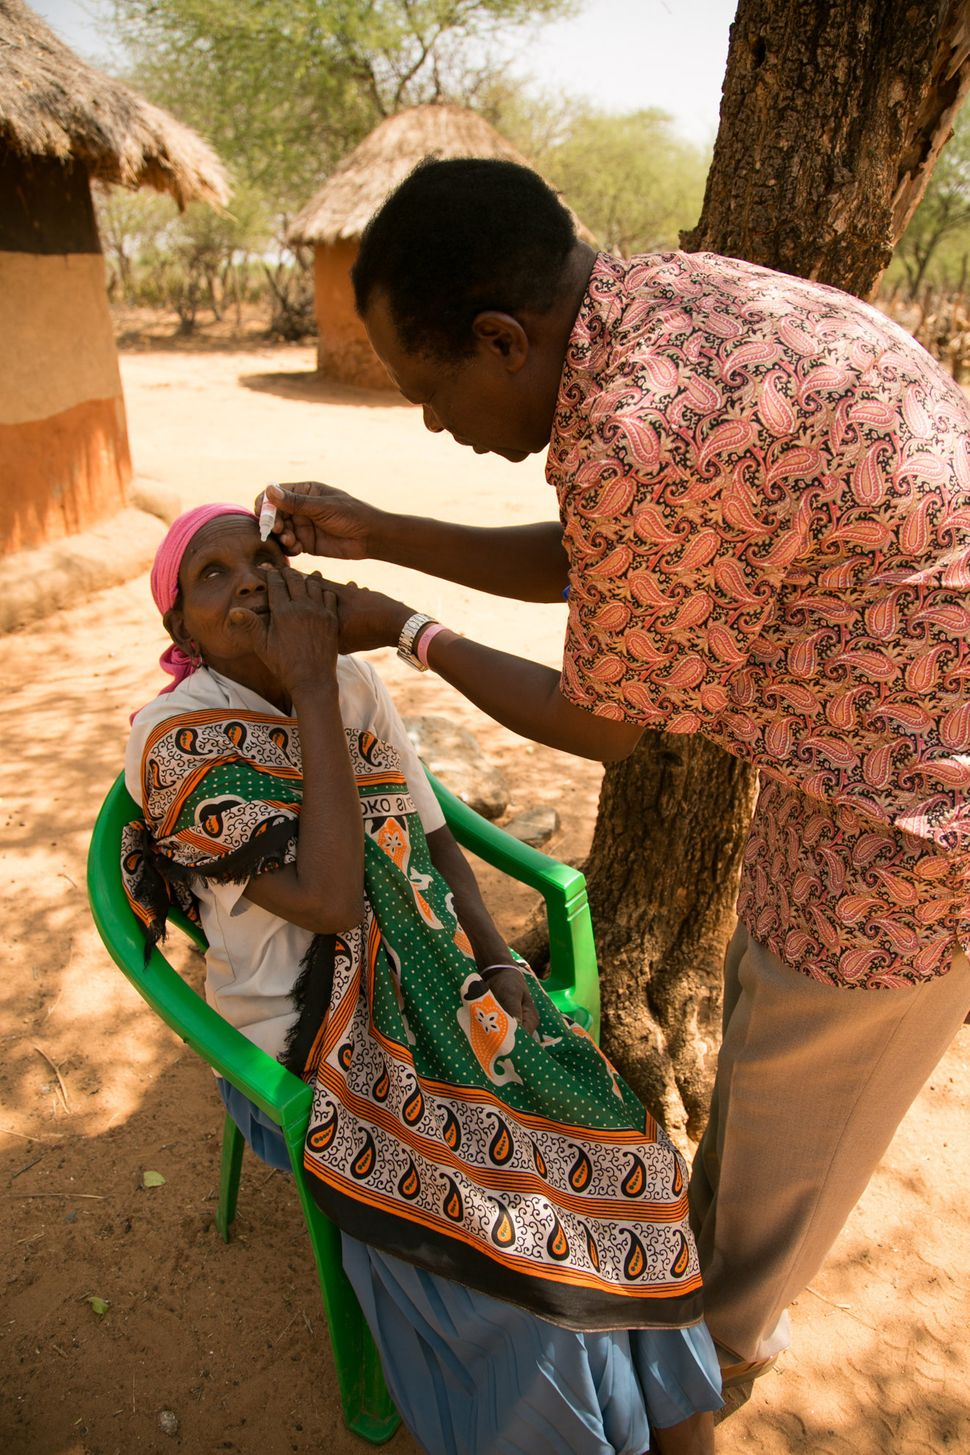 Dr. Michael Makari applies eyedrops to Chepserum's eyes during a follow-up visit. Makari has performed basic surge